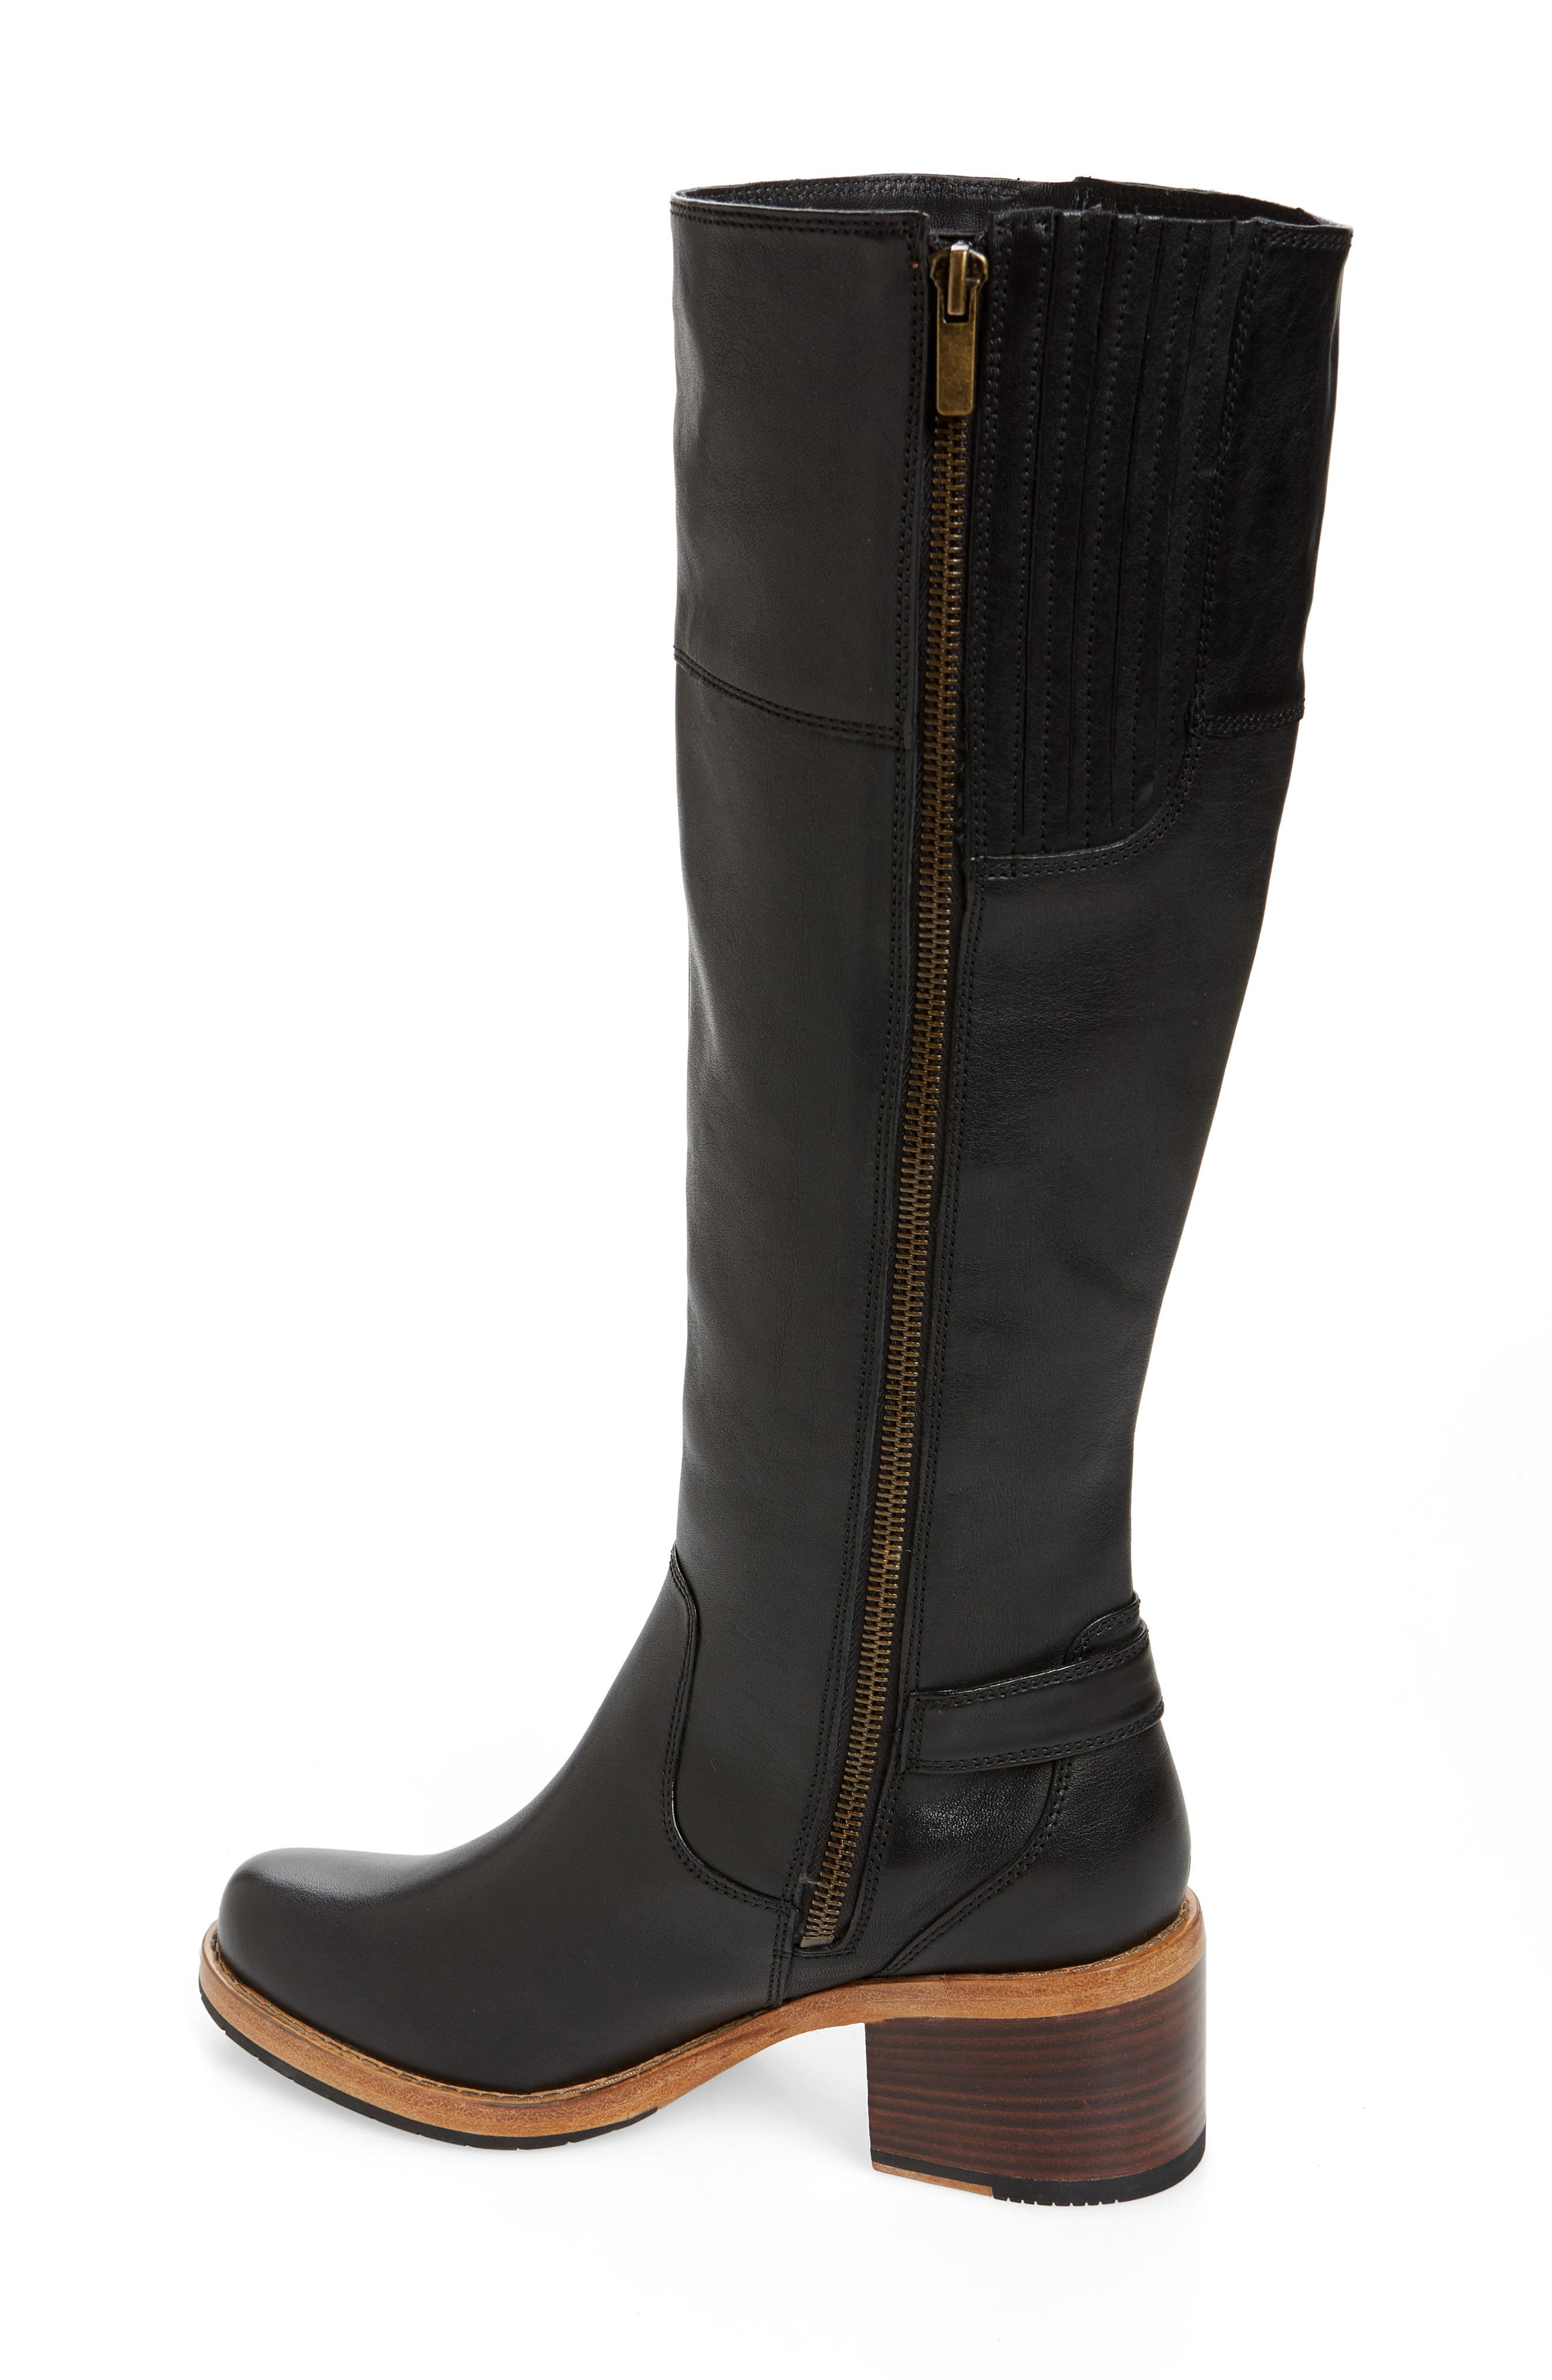 CLARKS<SUP>®</SUP>, Clarkdale Sona Boot, Alternate thumbnail 2, color, BLACK LEATHER